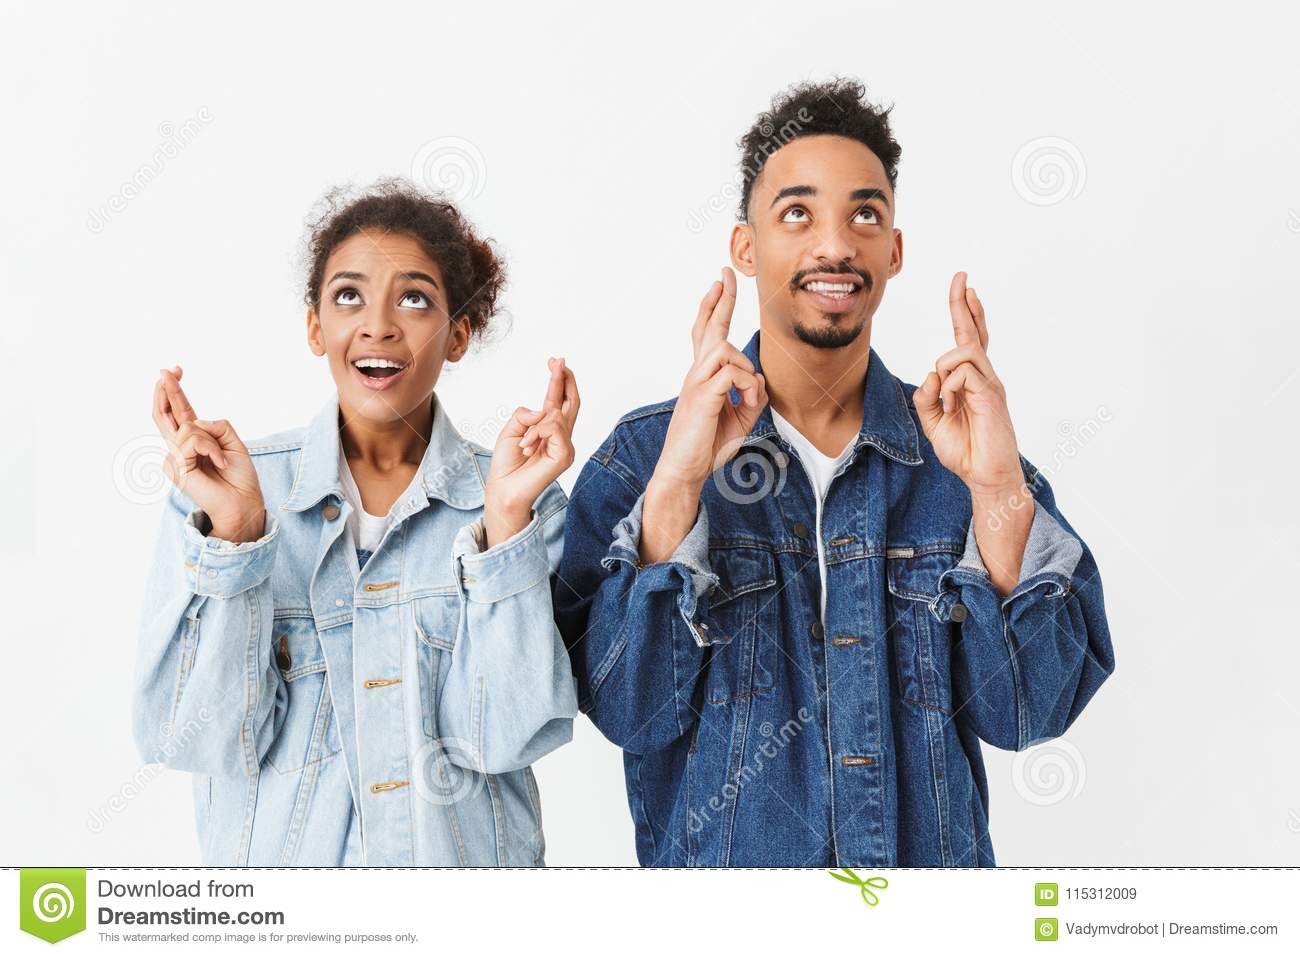 Smiling african couple in denim shirts praying together